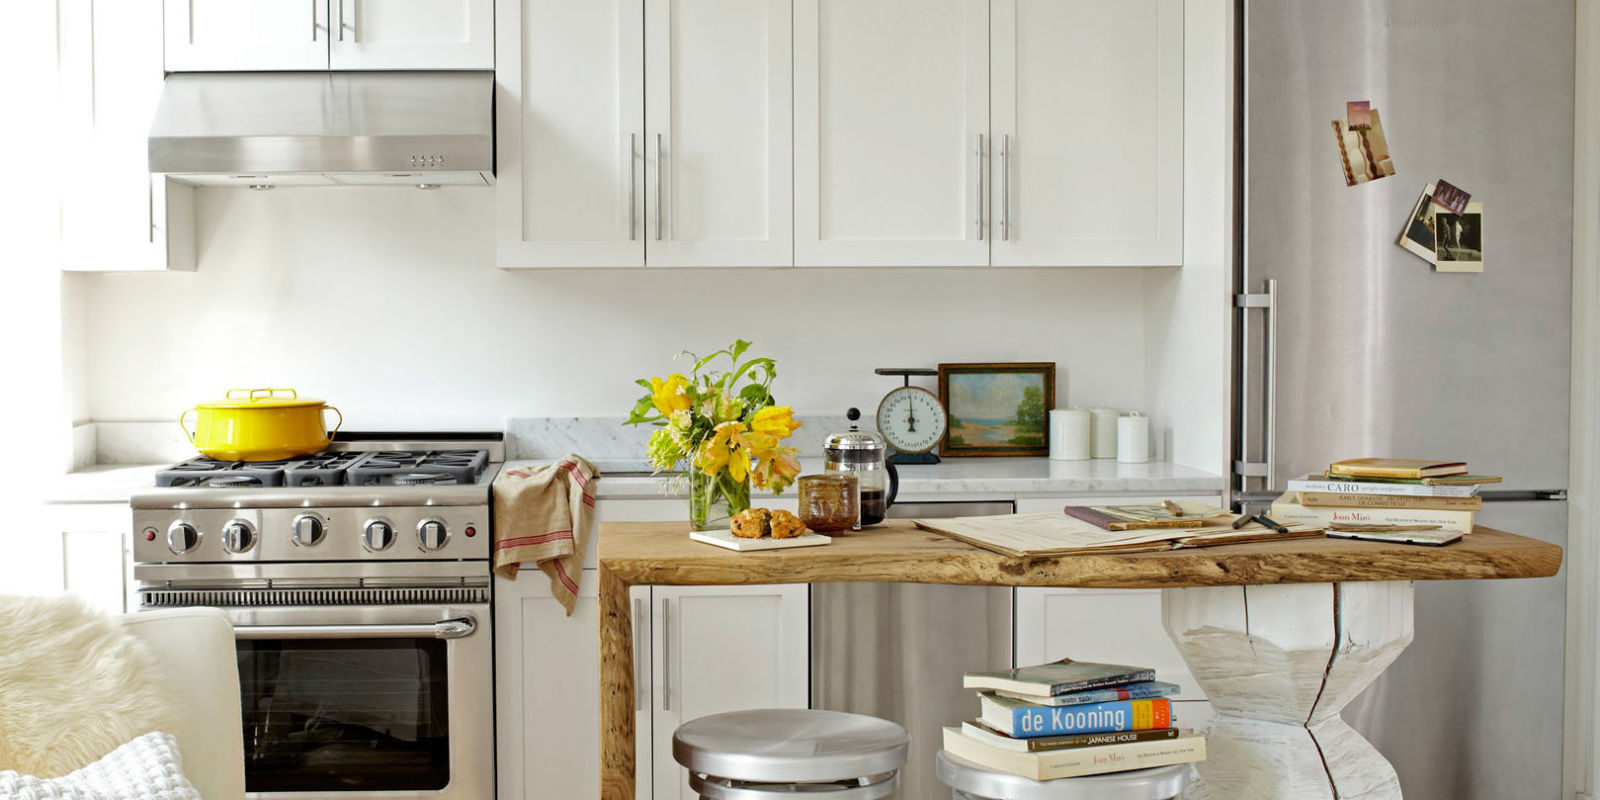 Apartment Kitchen Design #25: Good Storage Ideas For Small Apartment ...